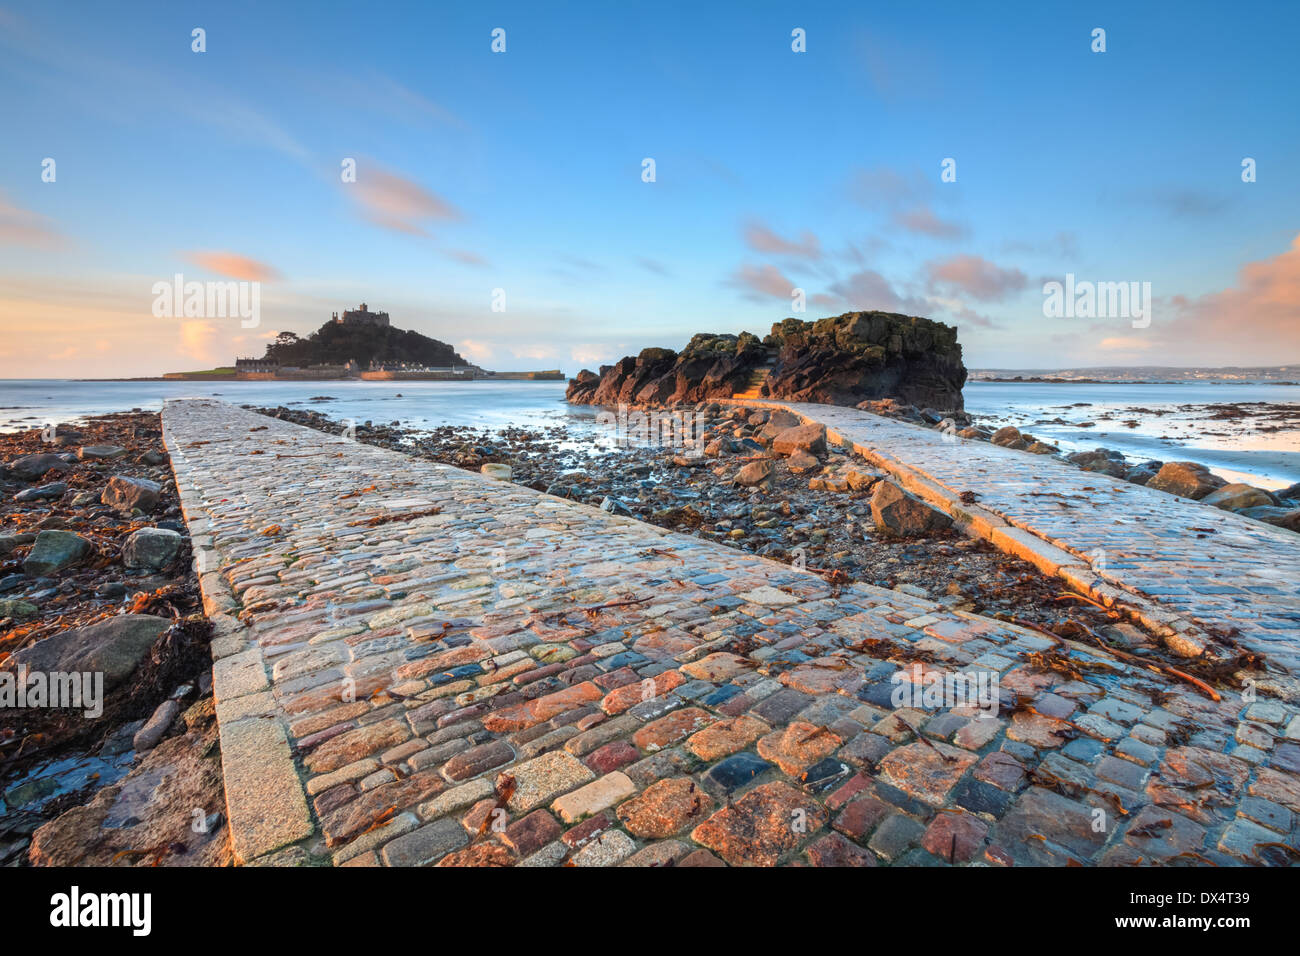 St Michael's Mount in Cornwall captured at sunrise from the causeway - Stock Image